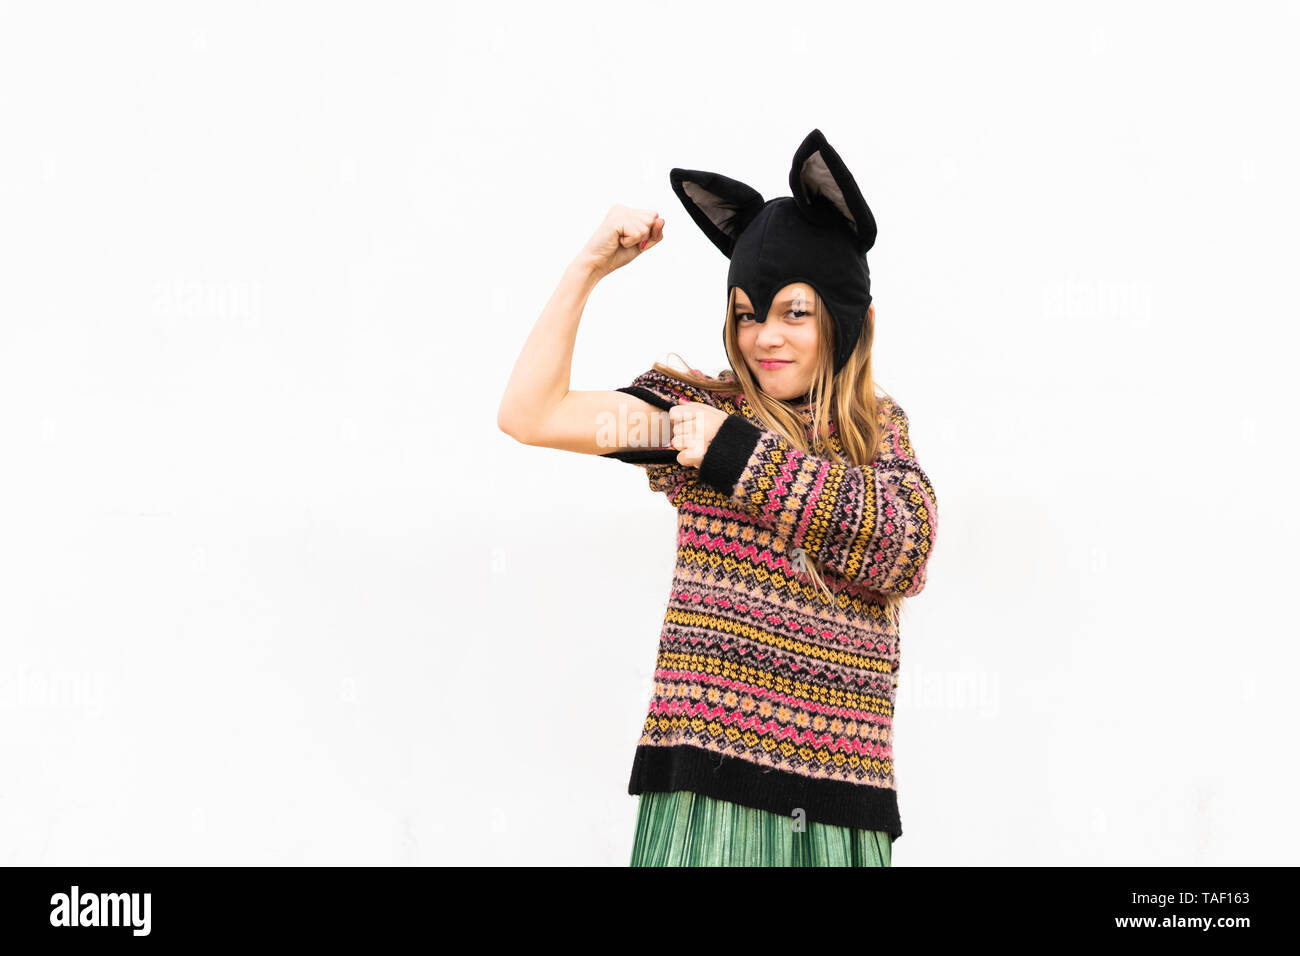 Portrait of girl flexing muscles in bat costume in front of white wall - Stock Image